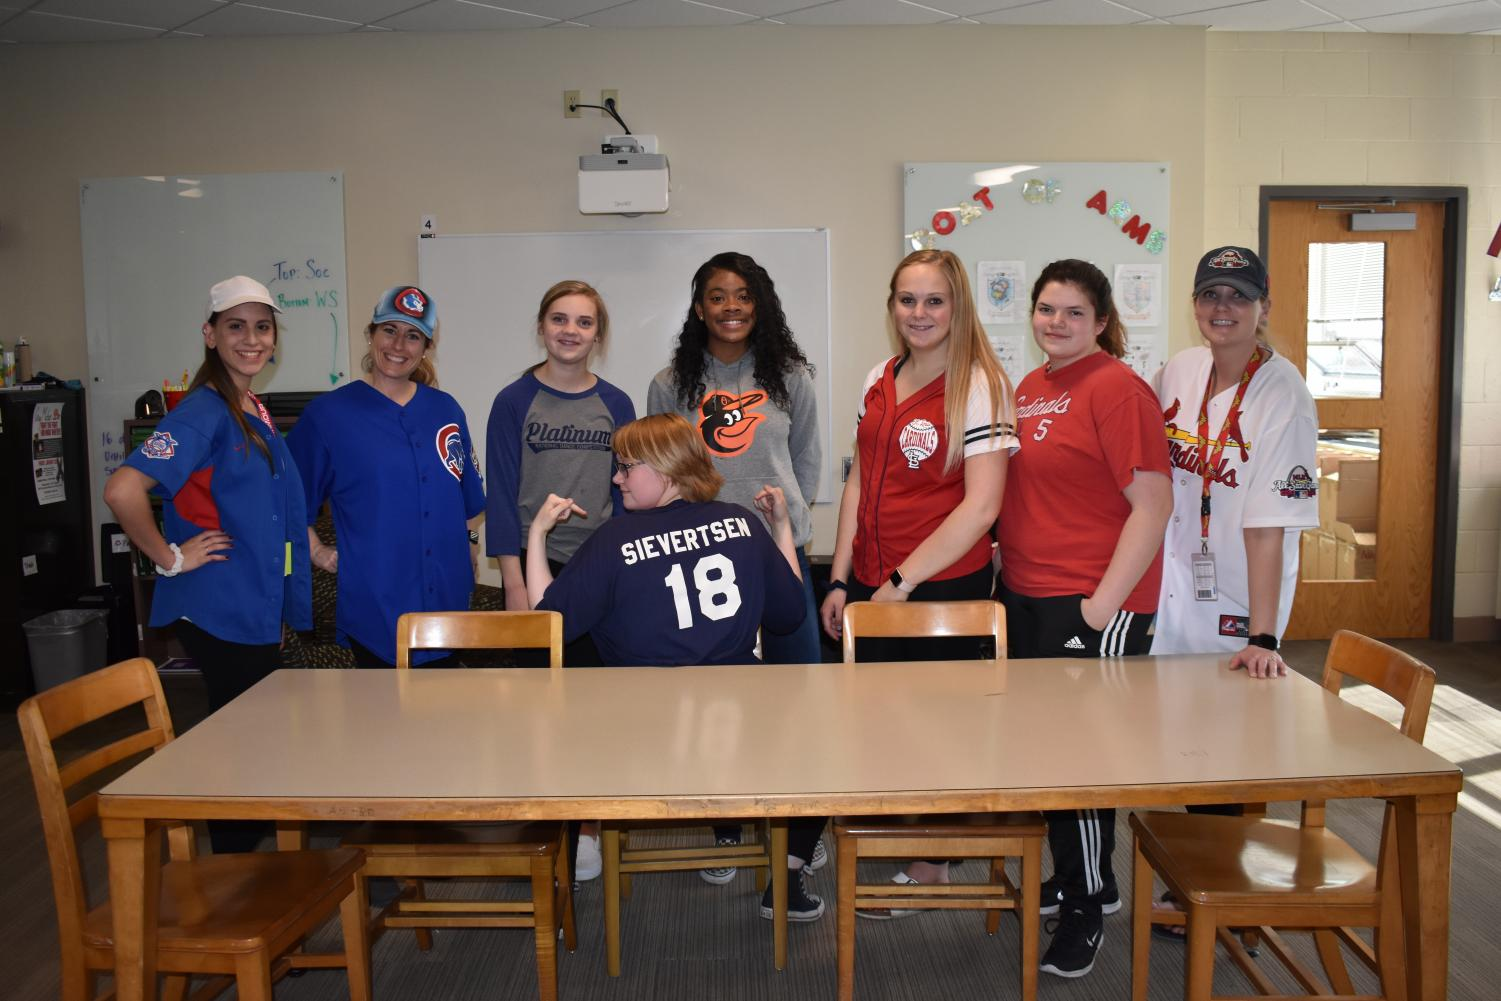 Student Senate takes part in Charity Week by wearing jerseys of their favorite sports teams on Wednesday, May 15. They dressed up every day of the week in an effort to raise awareness for the cause.